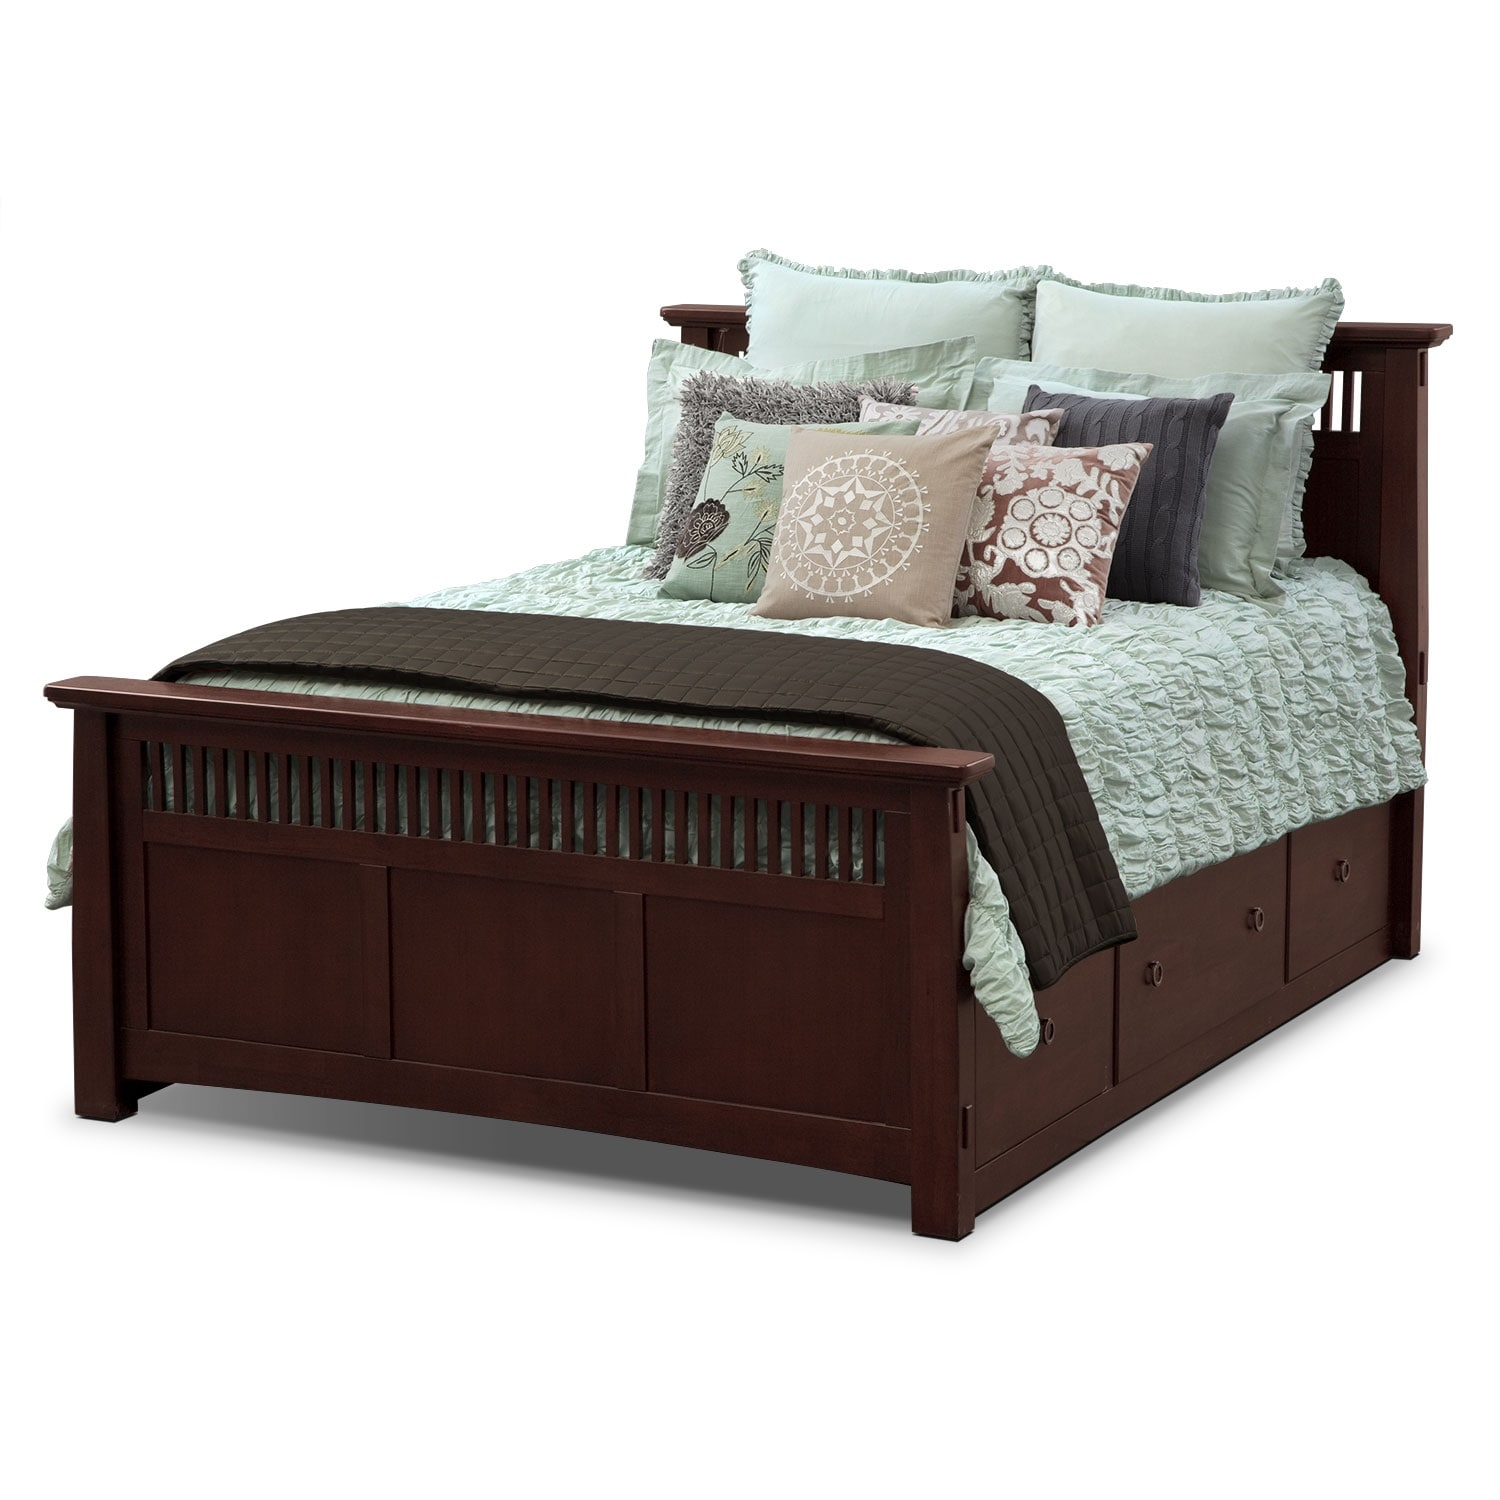 Accent and Occasional Furniture - Kaitlin II King Bedding Set